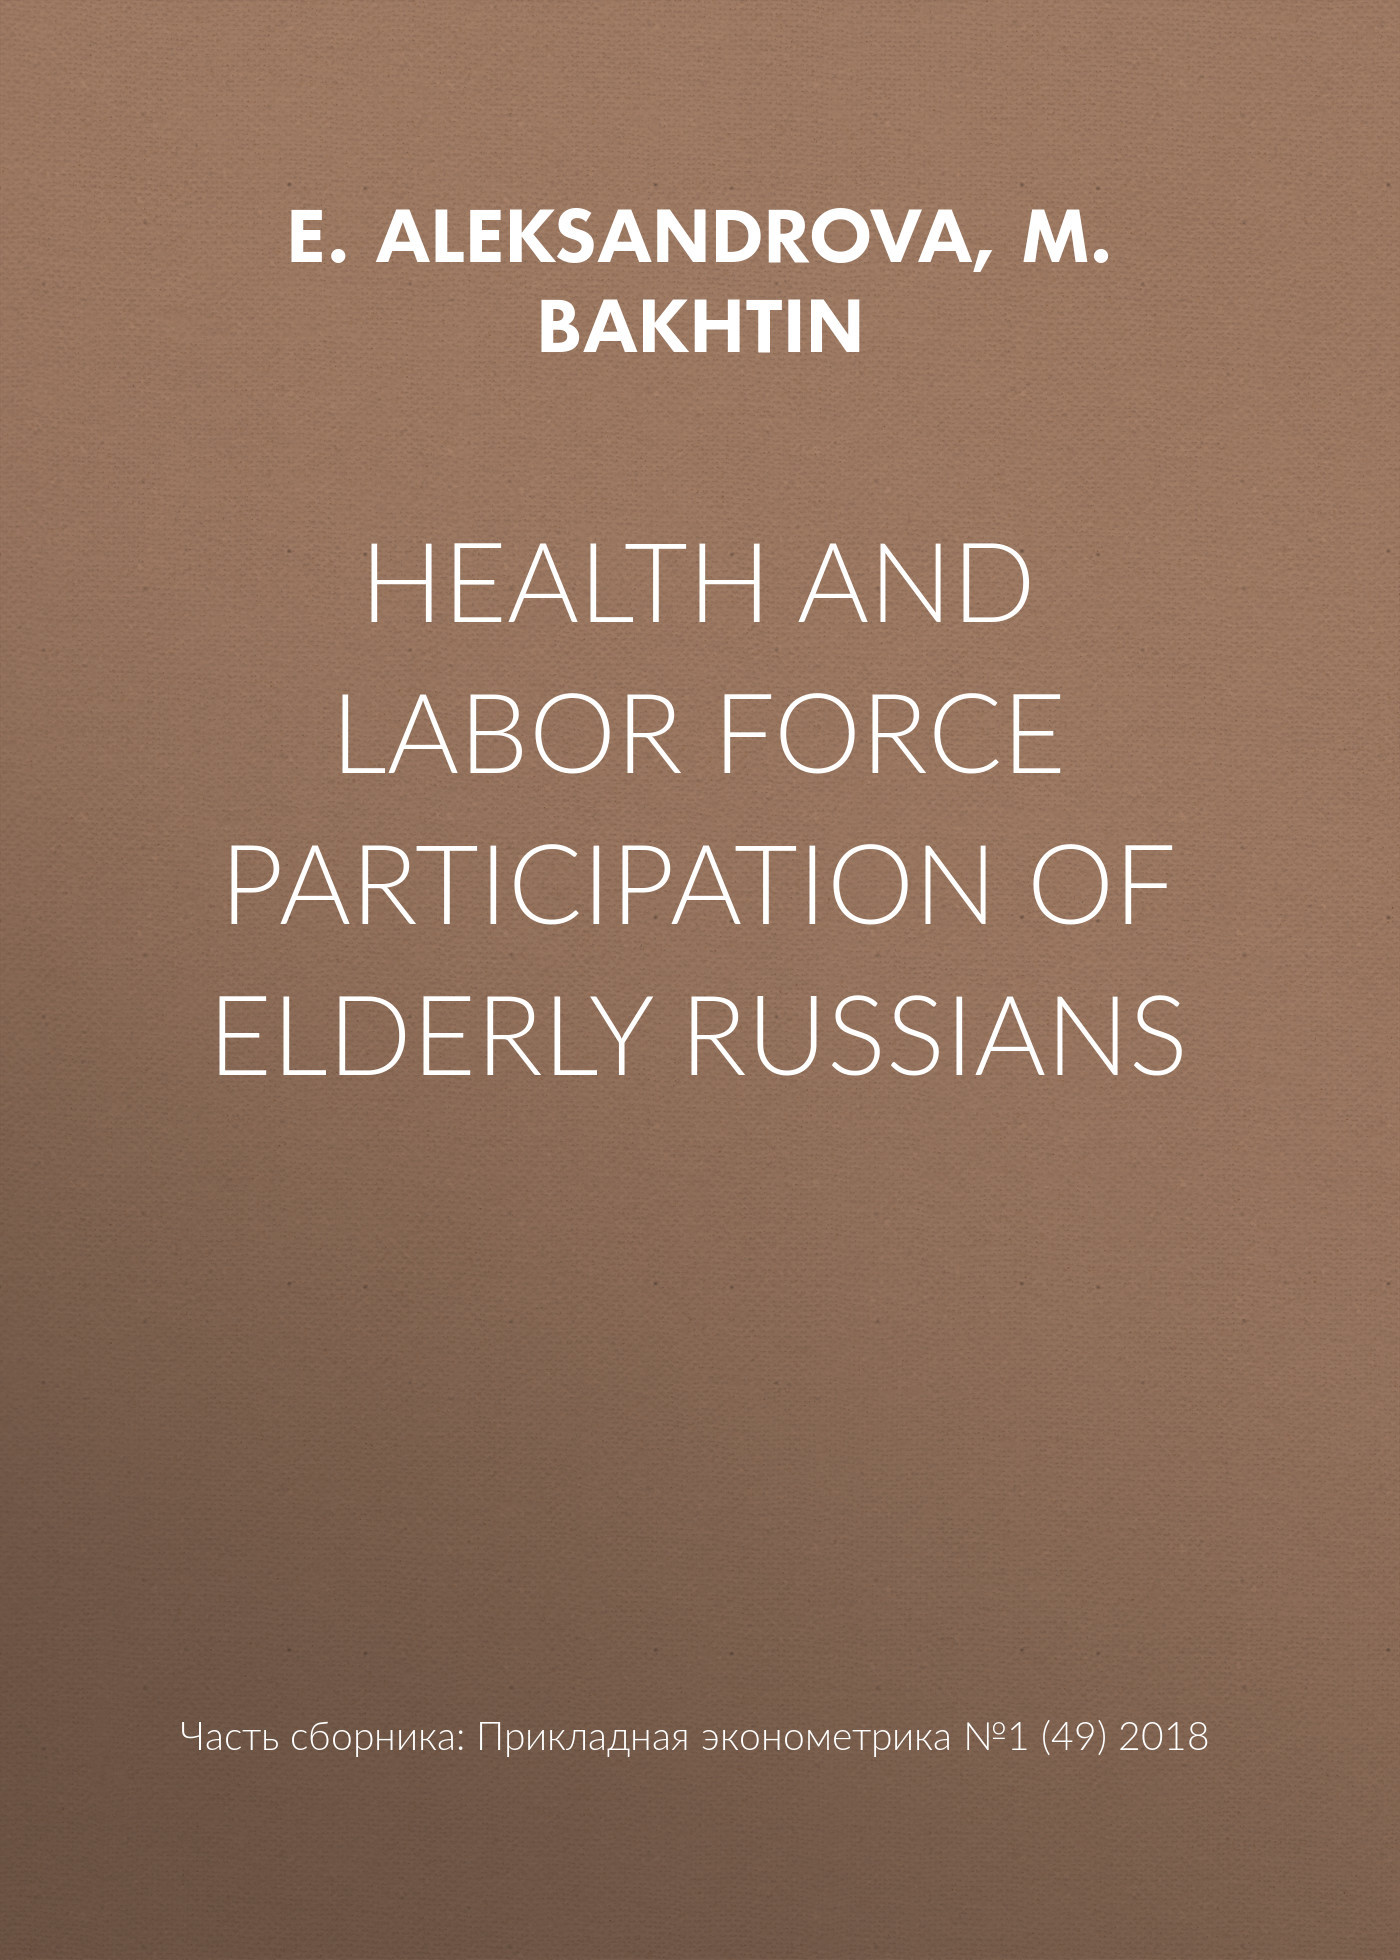 E. Aleksandrova Health and labor force participation of elderly Russians by health 1220mg 60